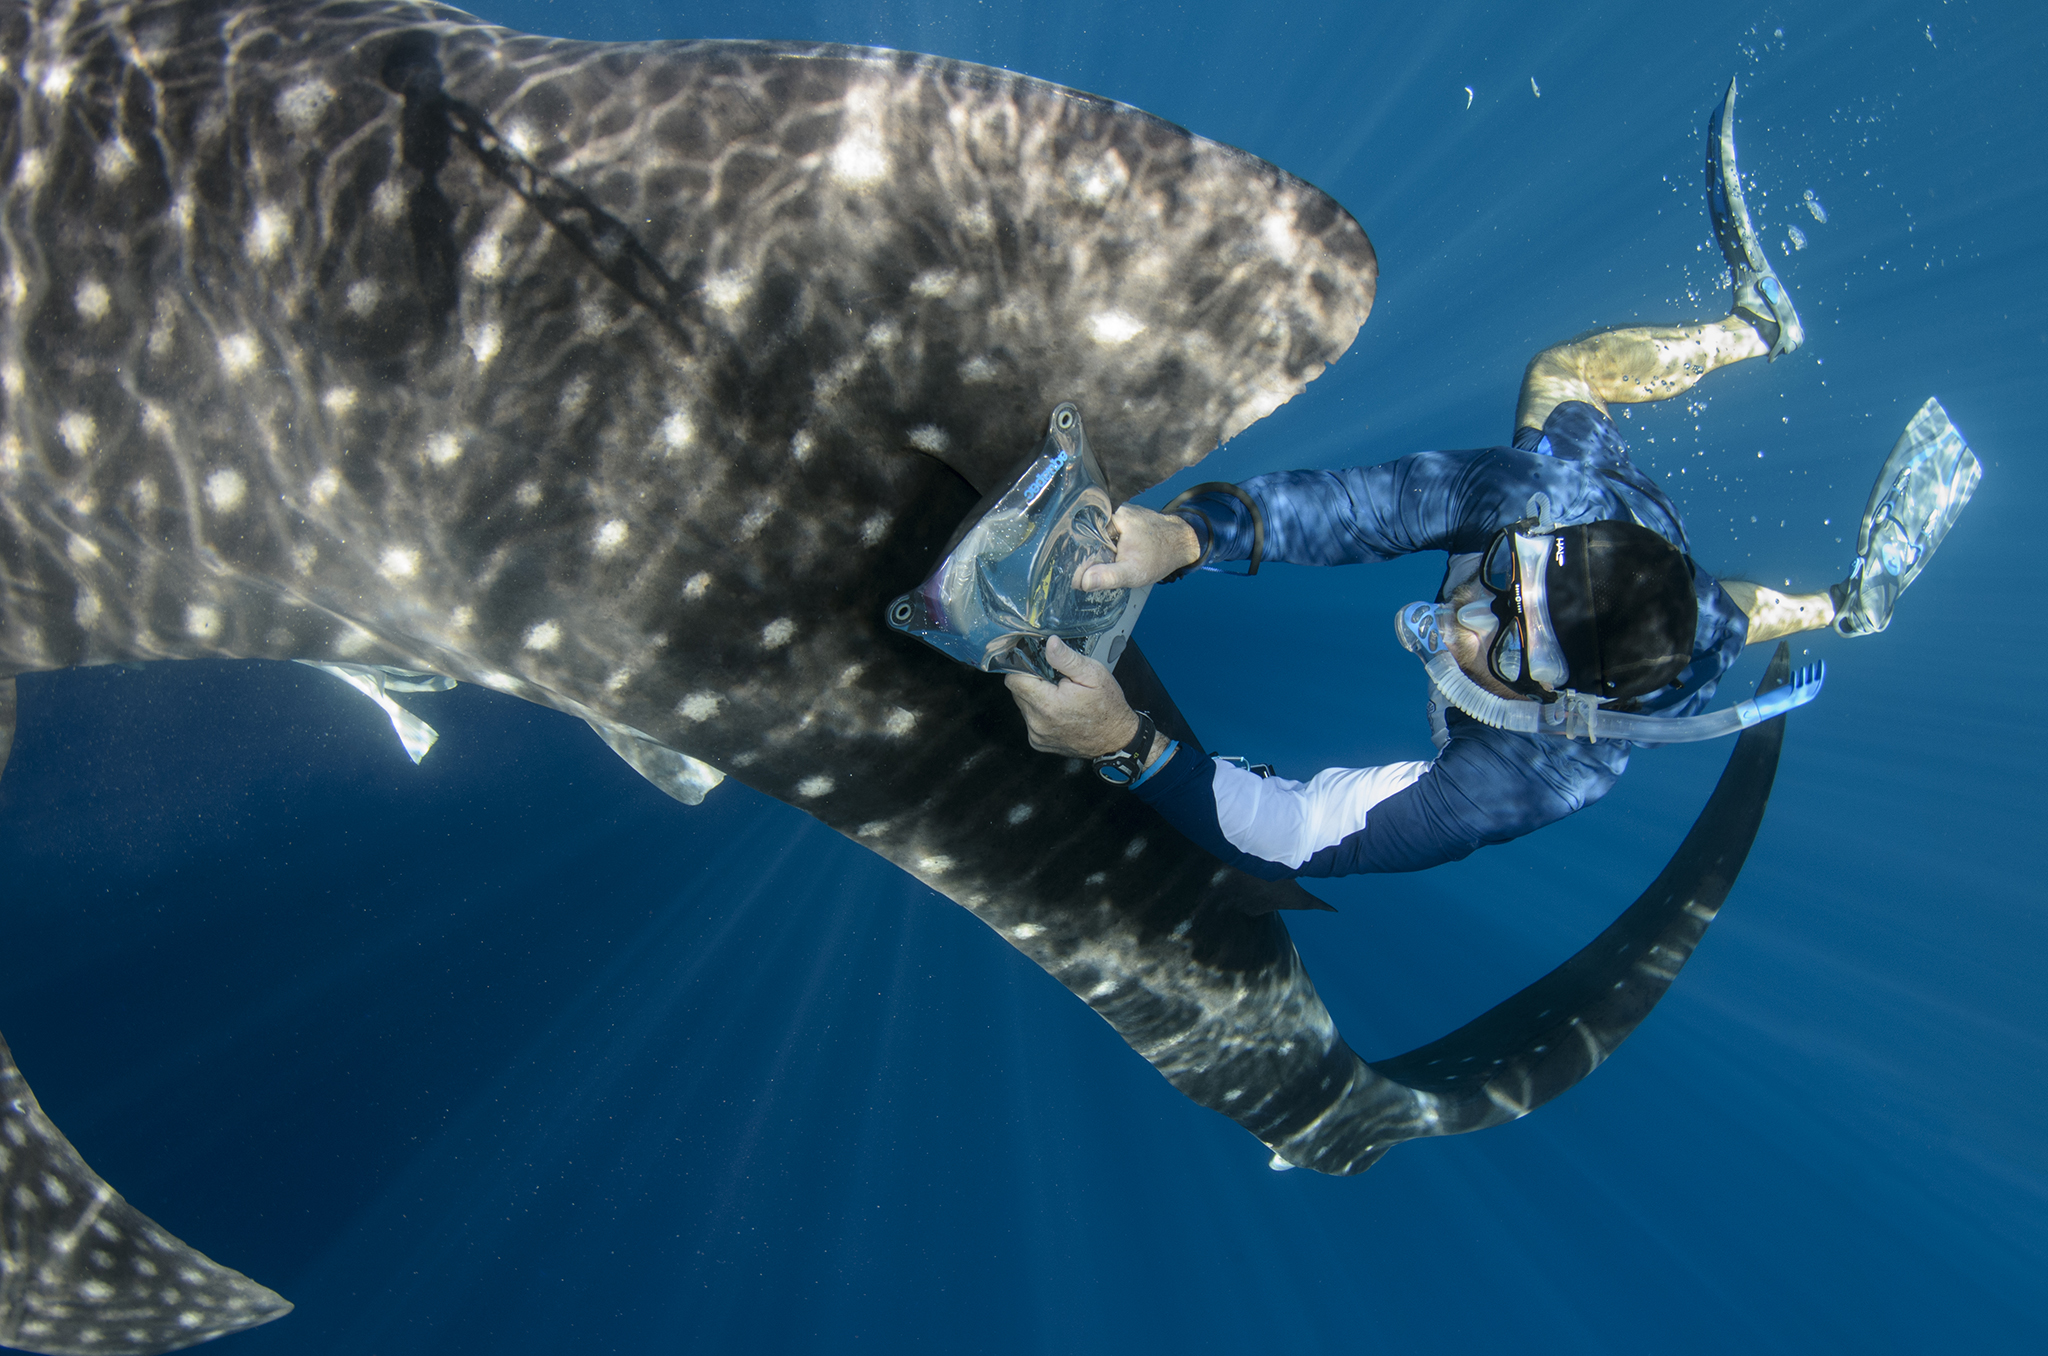 A scientist runs a portable tag reader along the side of a whale shark in search of a PIT tag. These tags, placed under the skin of the sharks, enable researchers to track the movements of individuals over the course of their lifetimes.